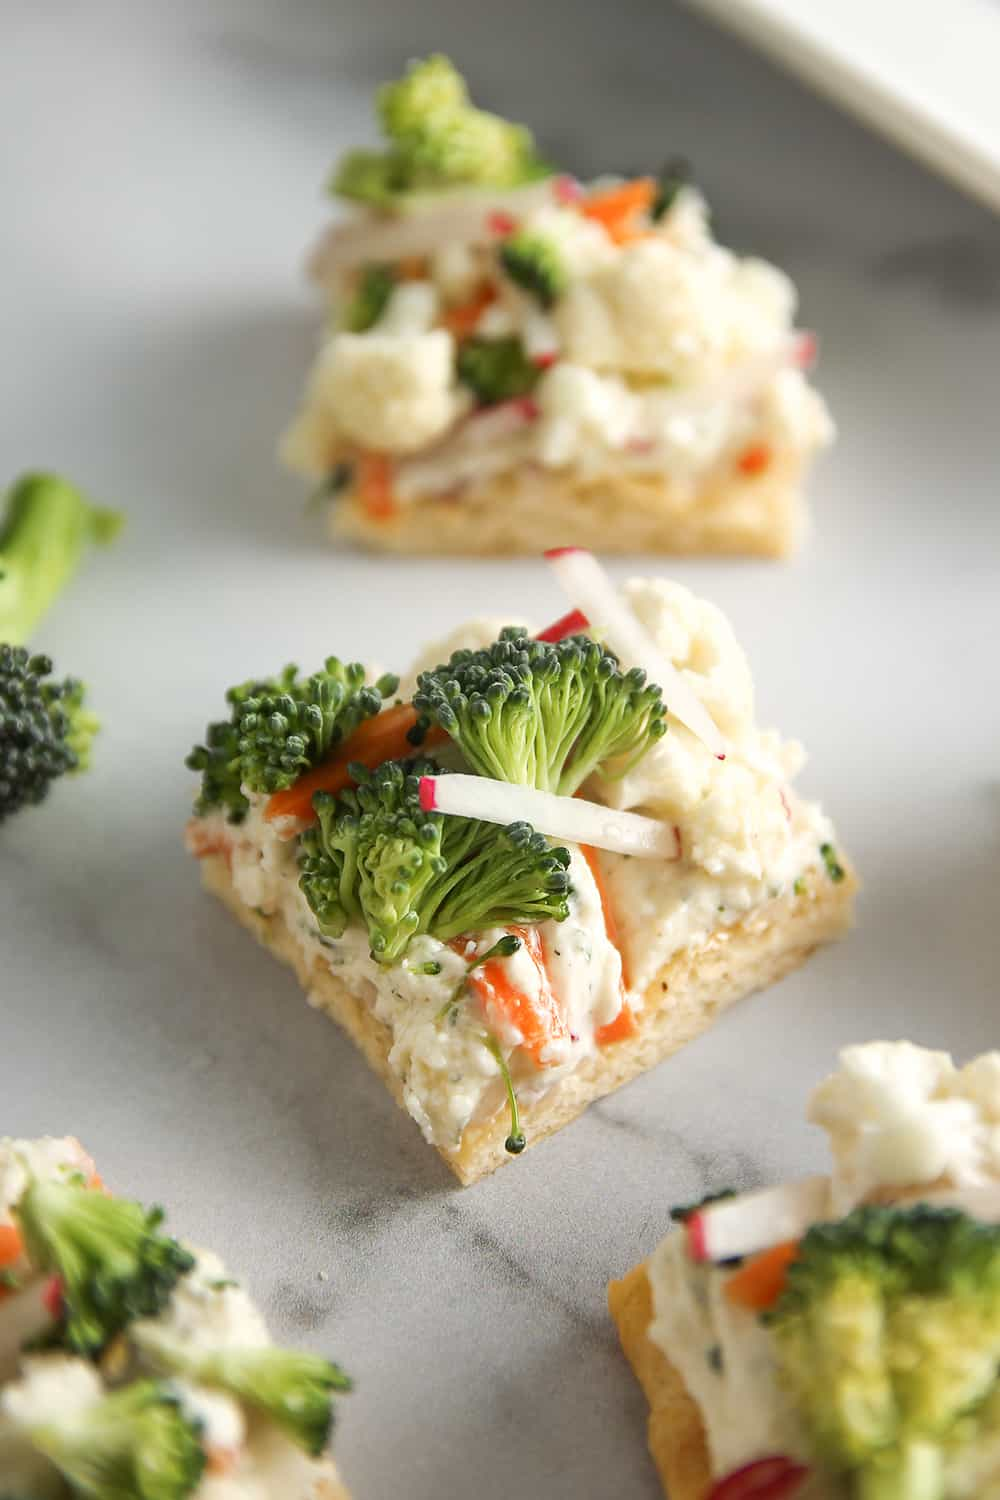 Vegetable Pizza is a delicious party appetizer, crescent roll dough topped with ranch cream cheese and chopped veggies.